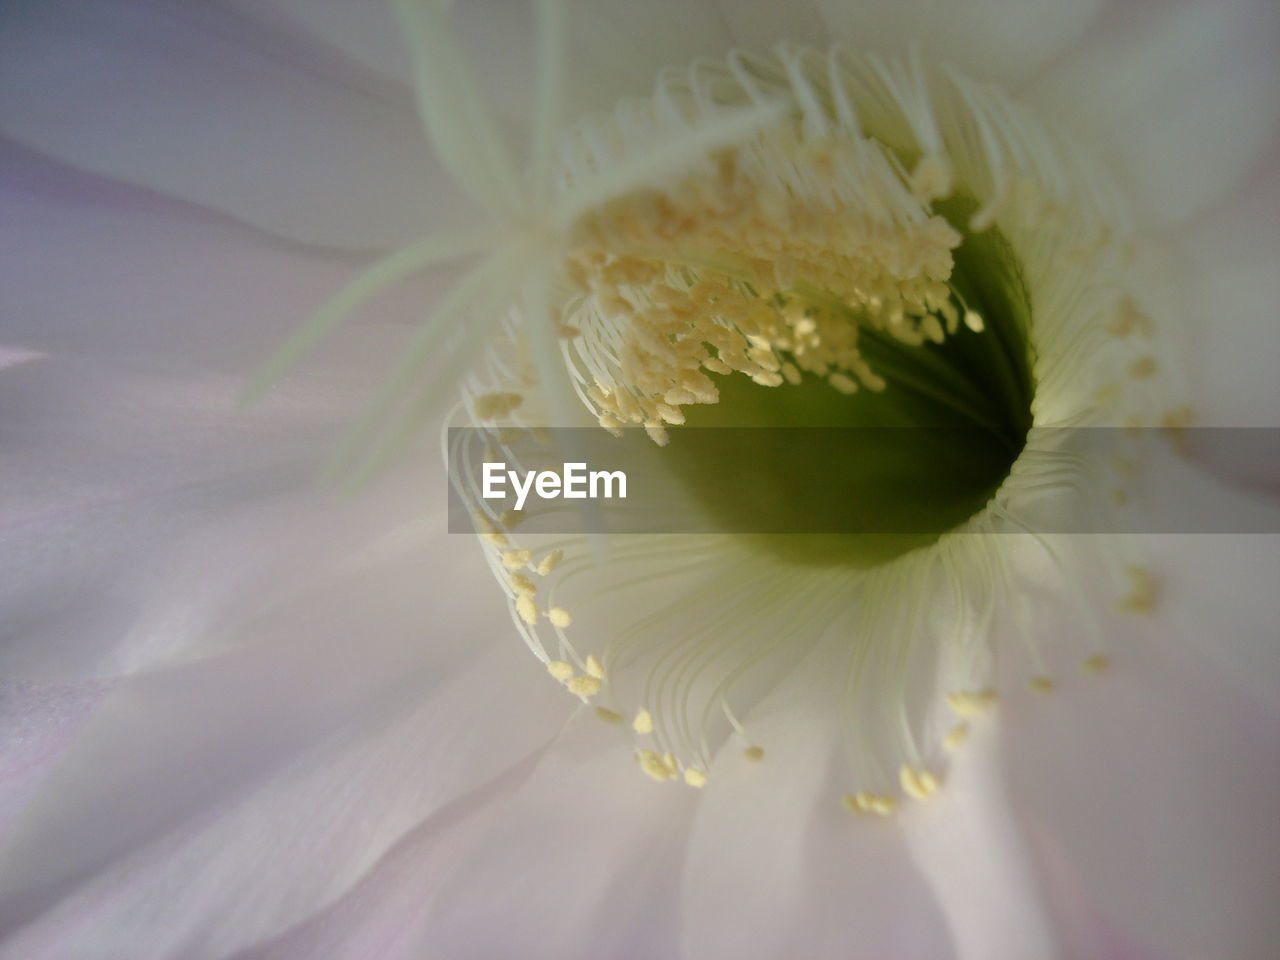 Extreme close-up of barrel cactus flower blooming outdoors